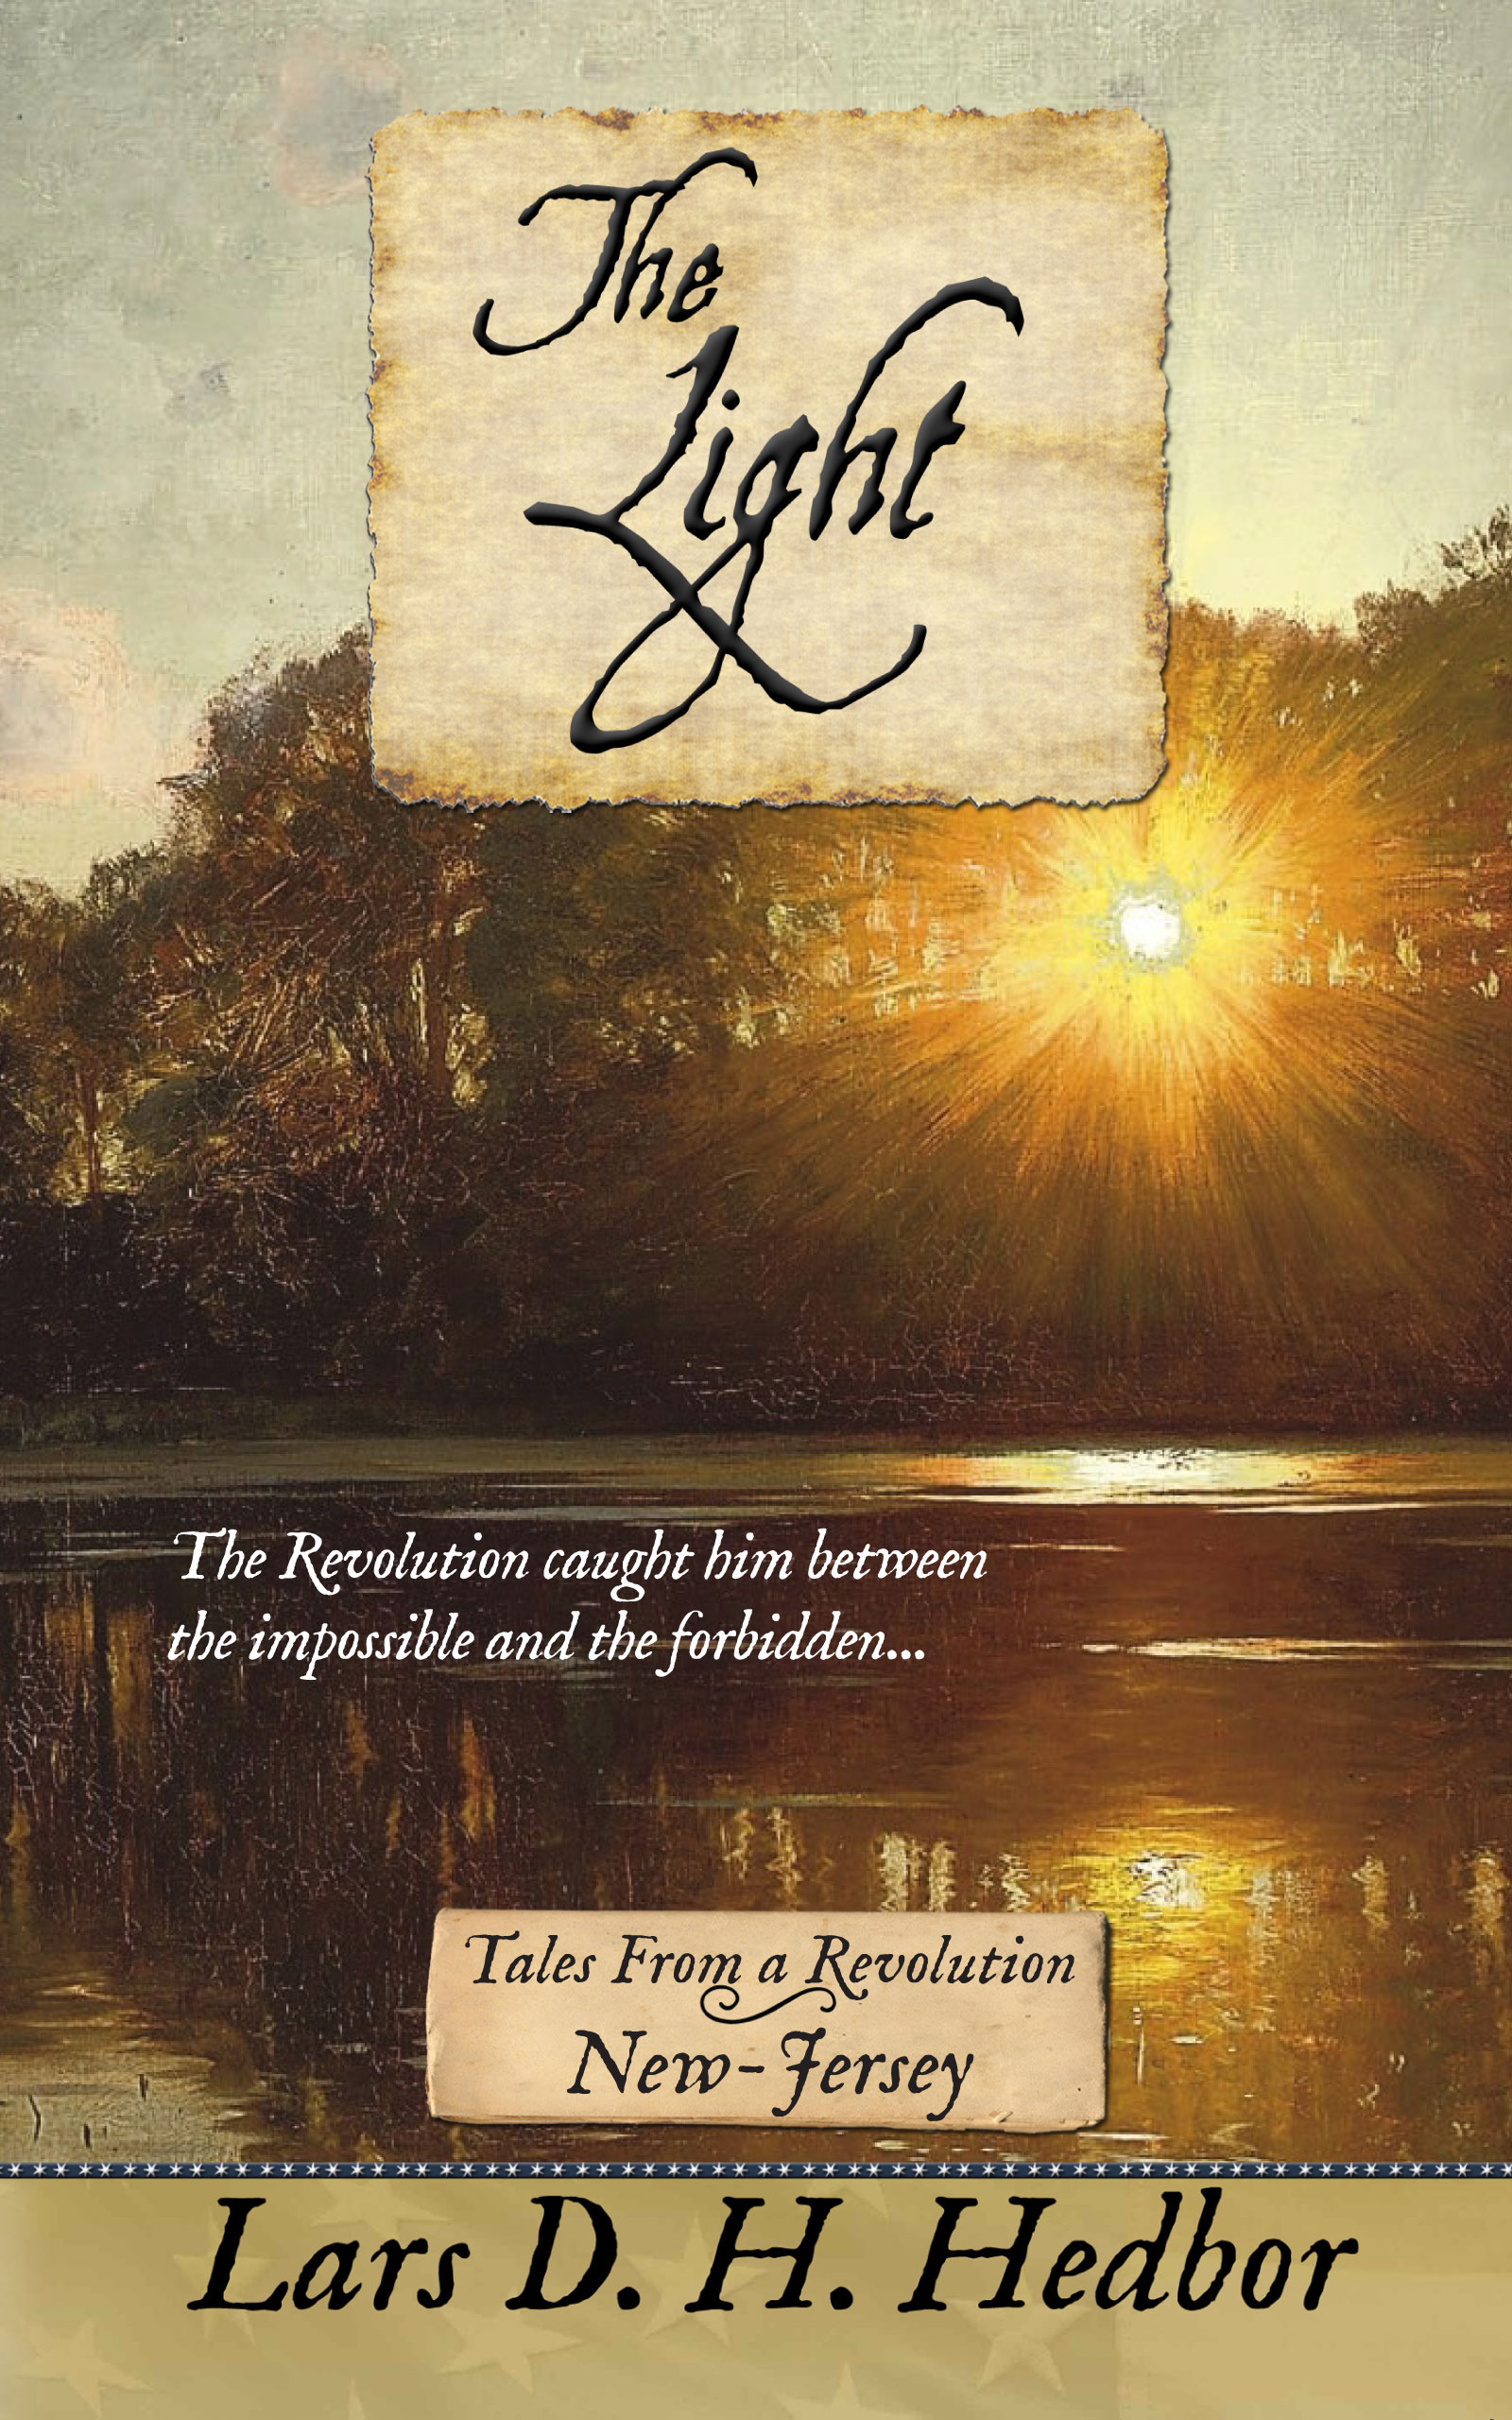 Cover image for The Light: Tales From a Revolution - New-Jersey